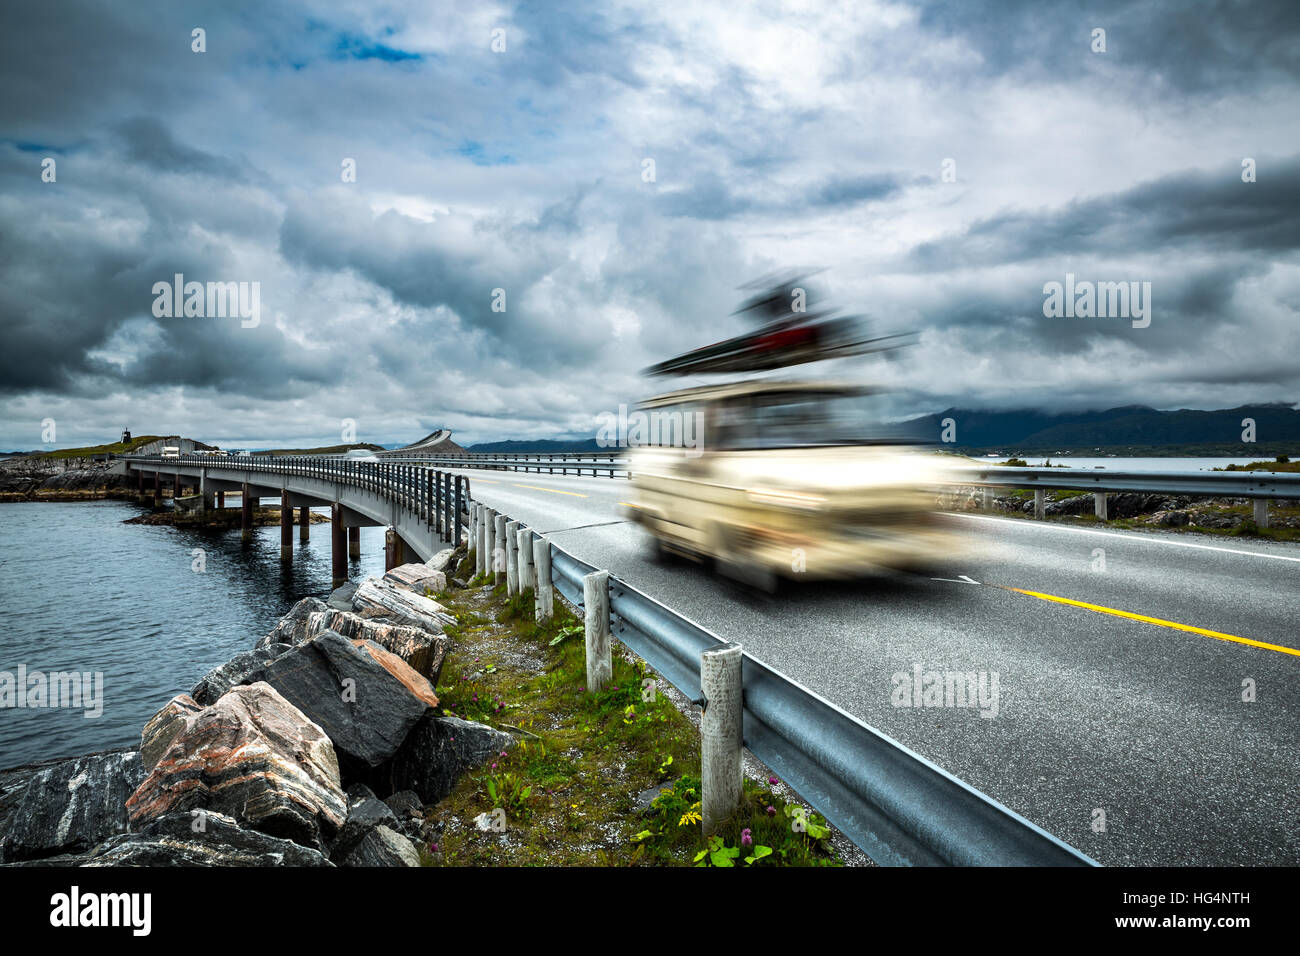 Car travels on the highway. Caravan Car in motion blur. Norway. Atlantic Ocean Road or the Atlantic Road (Atlanterhavsveien) - Stock Image